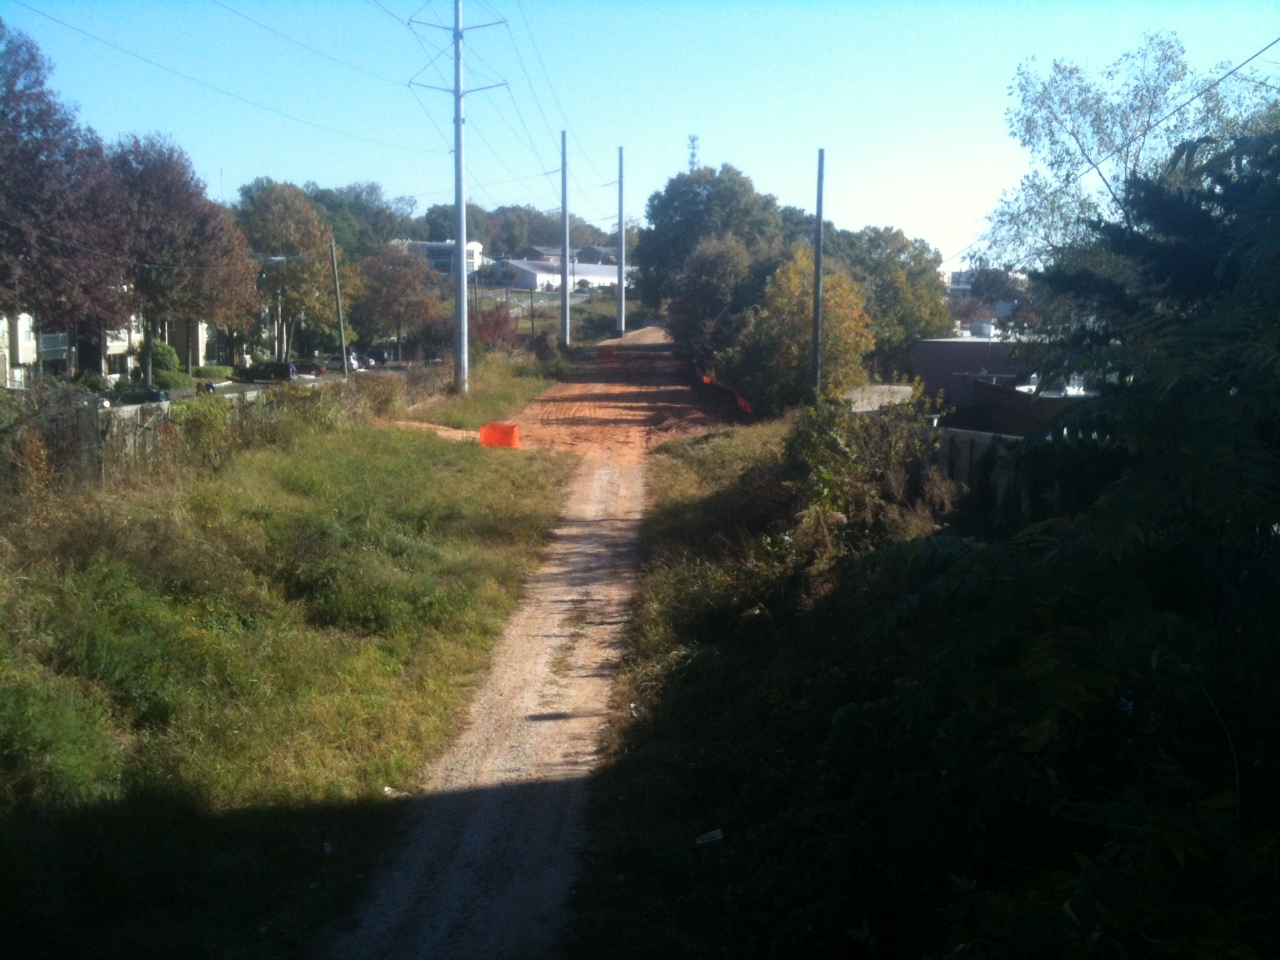 The railroad corridor after being trasformed into the Atlanta Beltline.